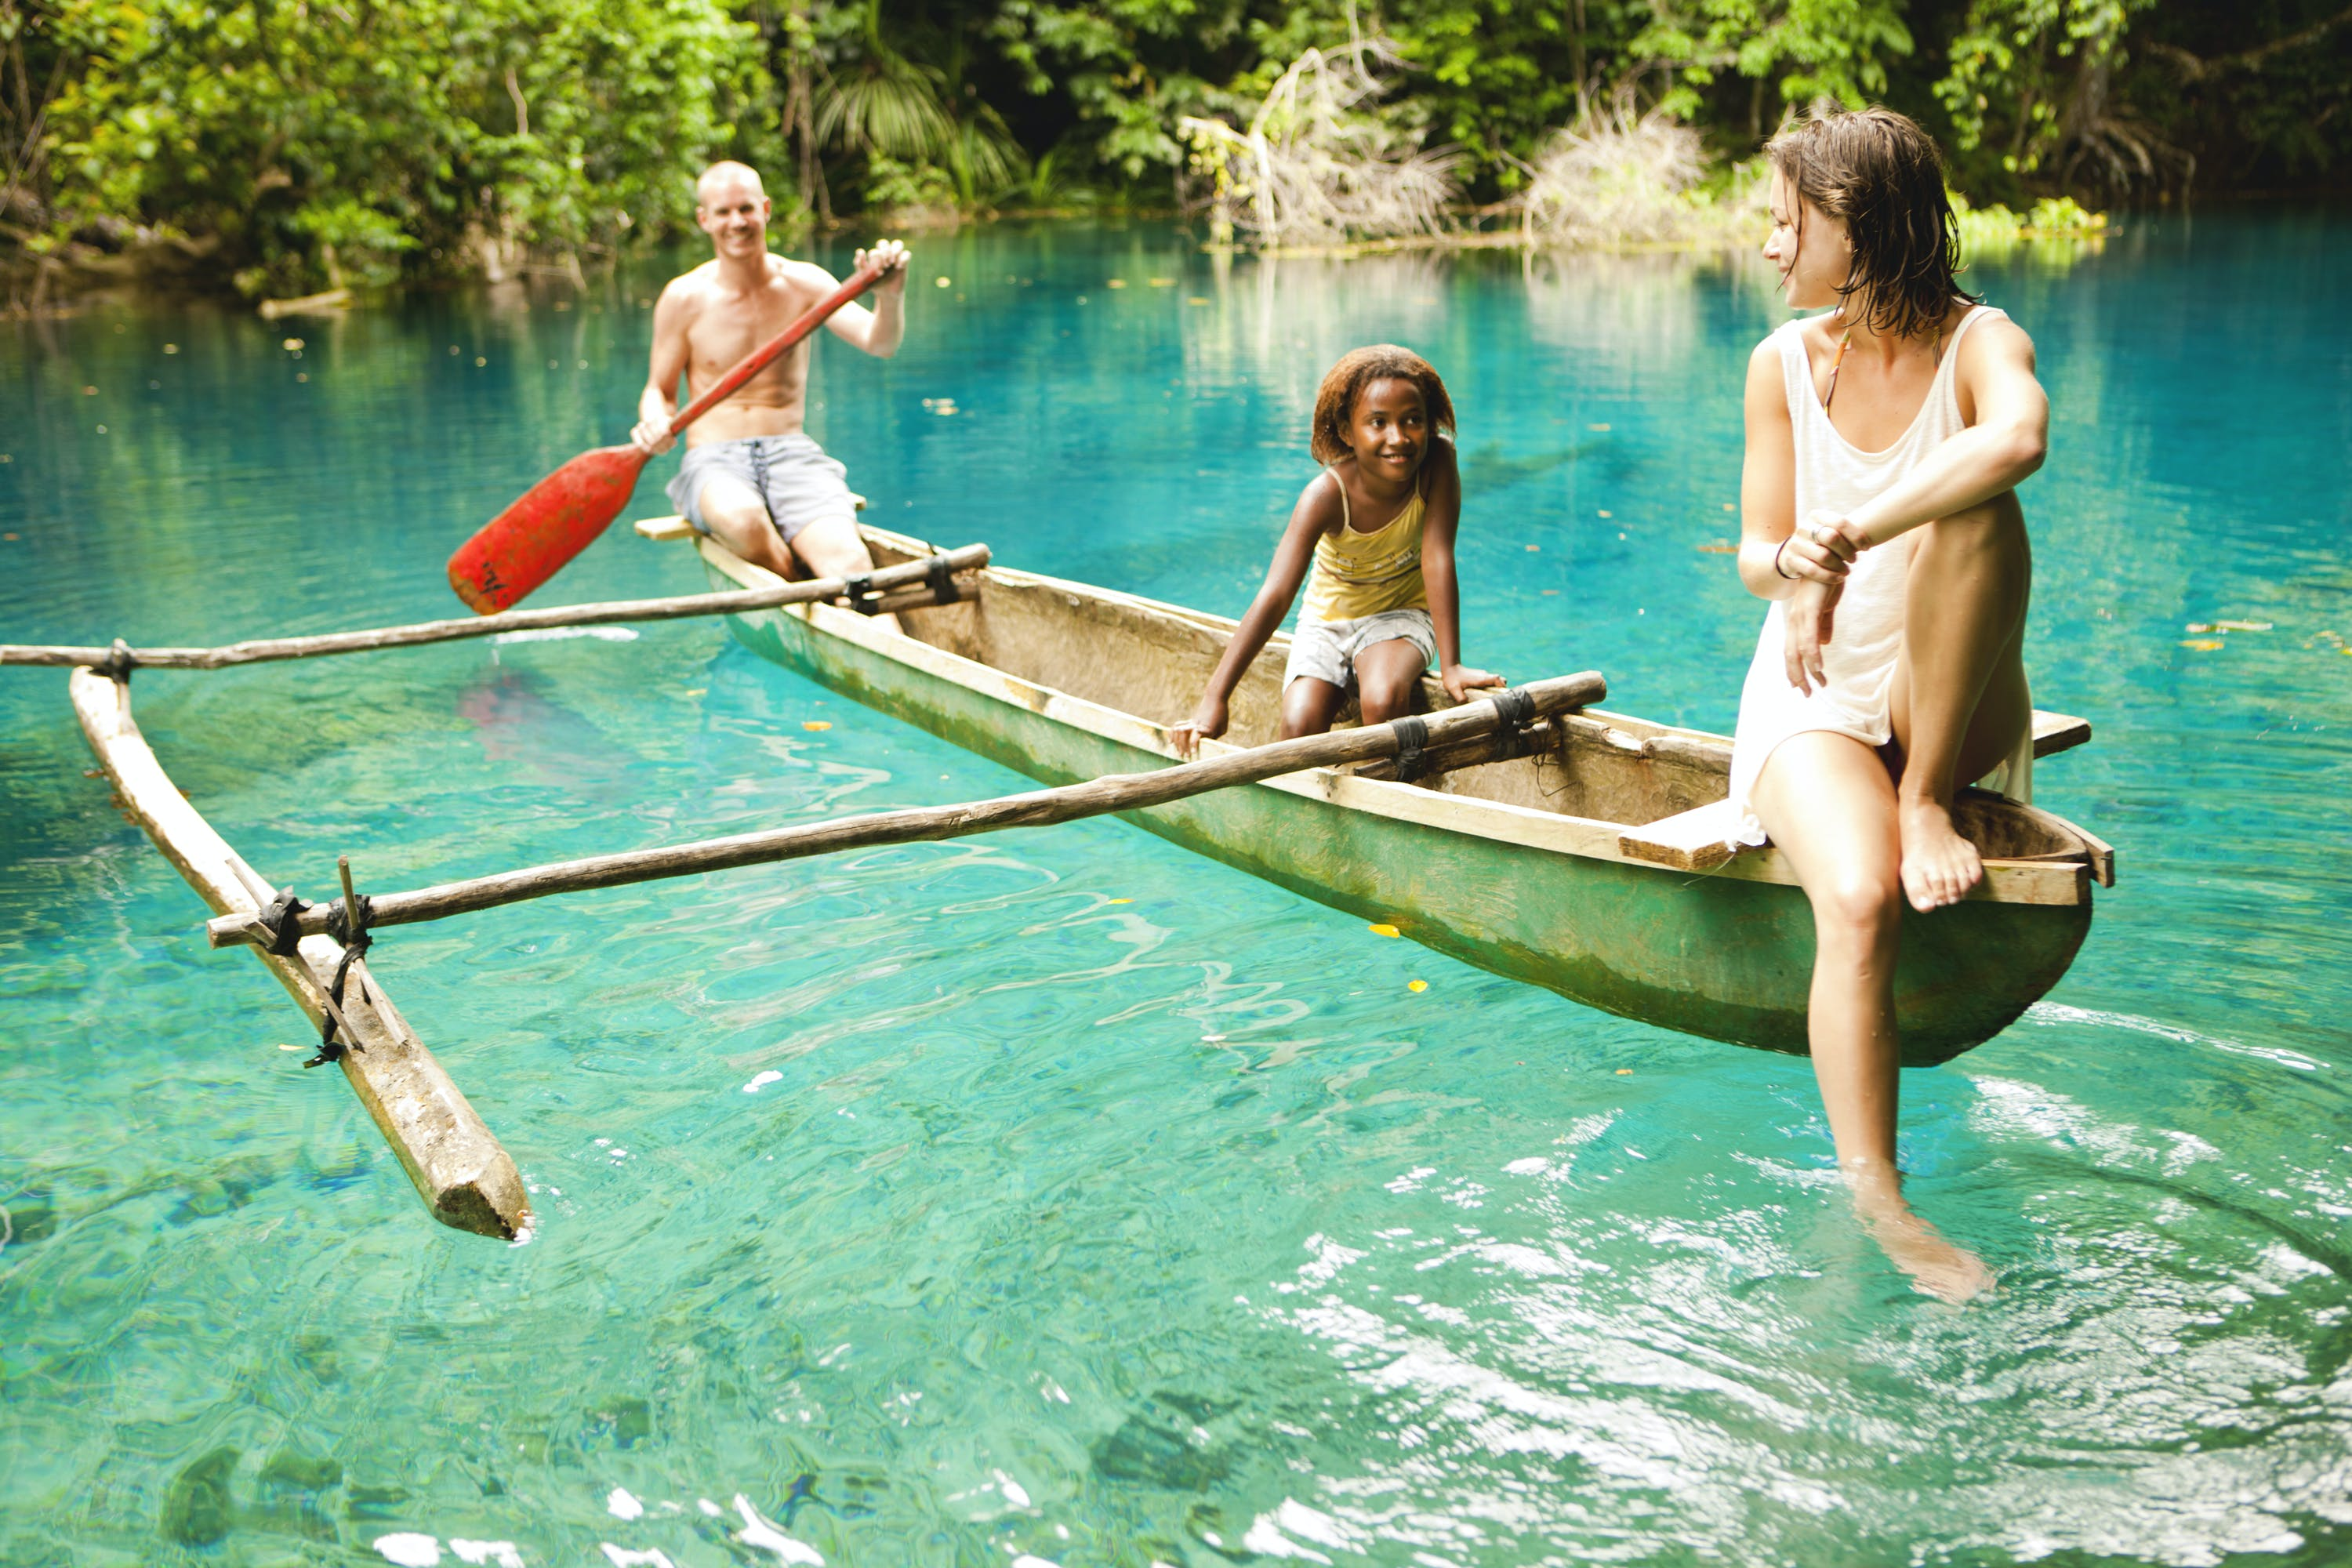 Take a tour in an Outrigger Canoe erakor island resort & spa #erakorislandresort #vanuatuholidays #tropicalislandholiday